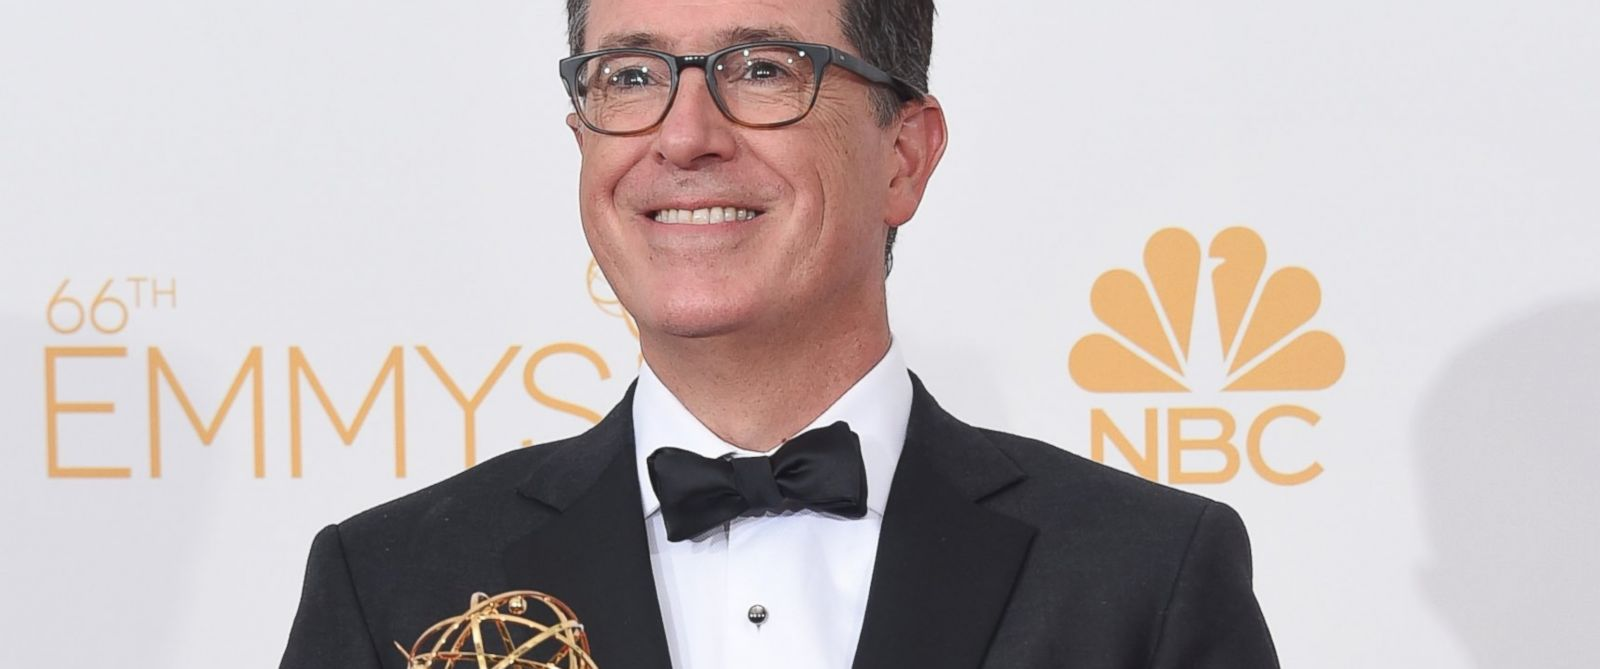 PHOTO: Writer/Producer/Host Stephen Colbert, winner of the for Outstanding Variety Series Award for The Colbert Report, poses in the press room during the 66th Annual Primetime Emmy Awards held at Nokia Theatre L.A. Live, Aug. 25, 2014 in Los Angeles.